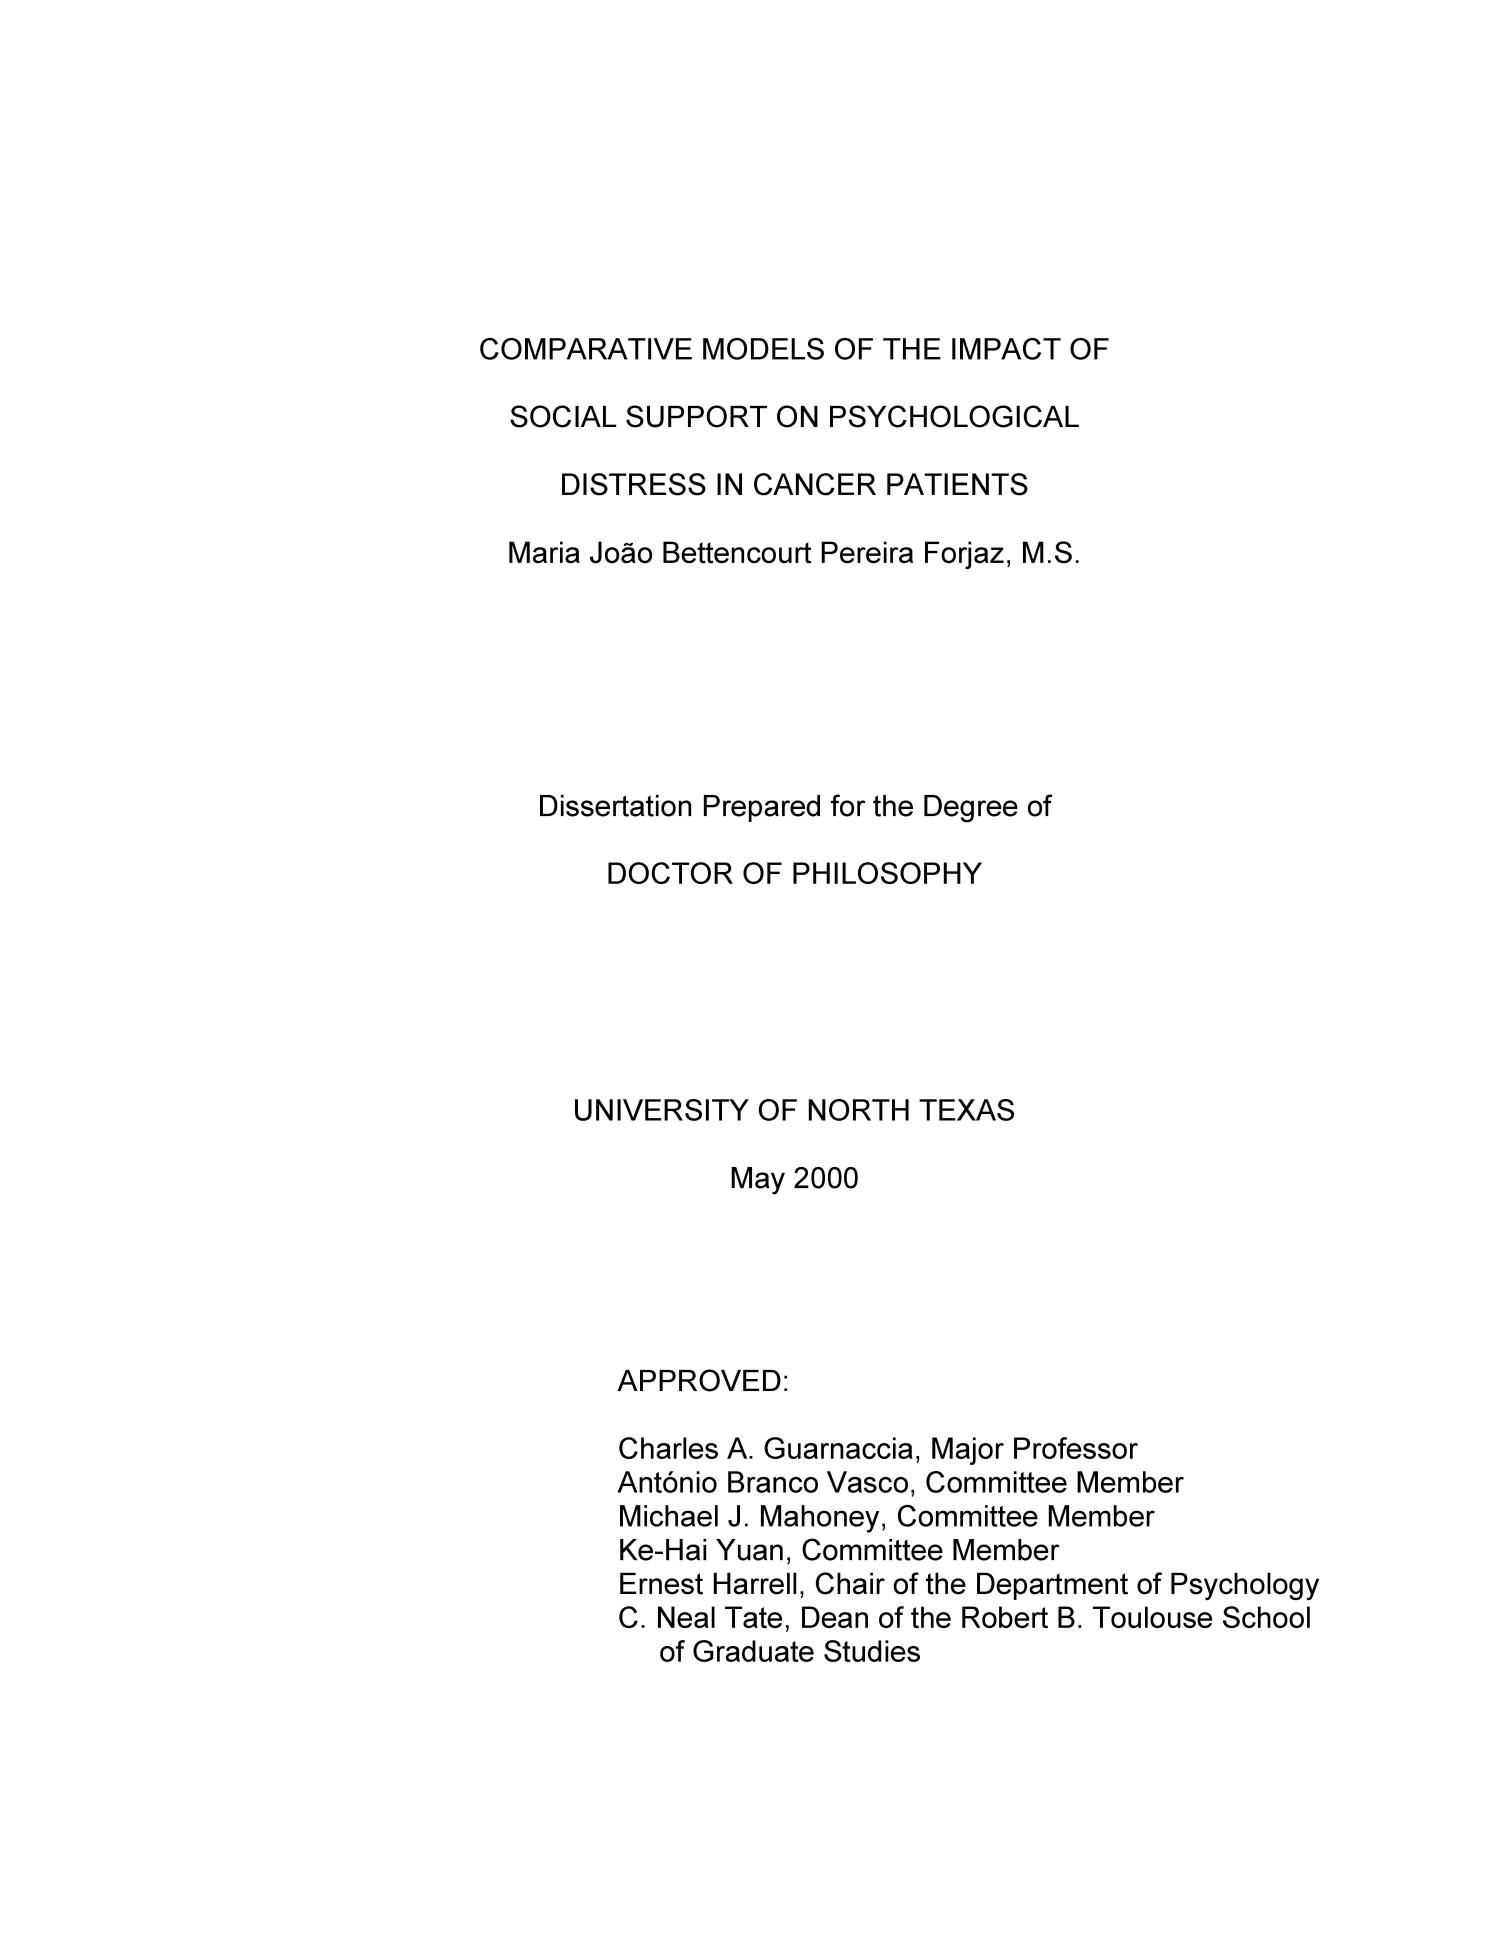 Comparative Models of the Impact of Social Support on Psychological Distress in Cancer Patients                                                                                                      Title Page